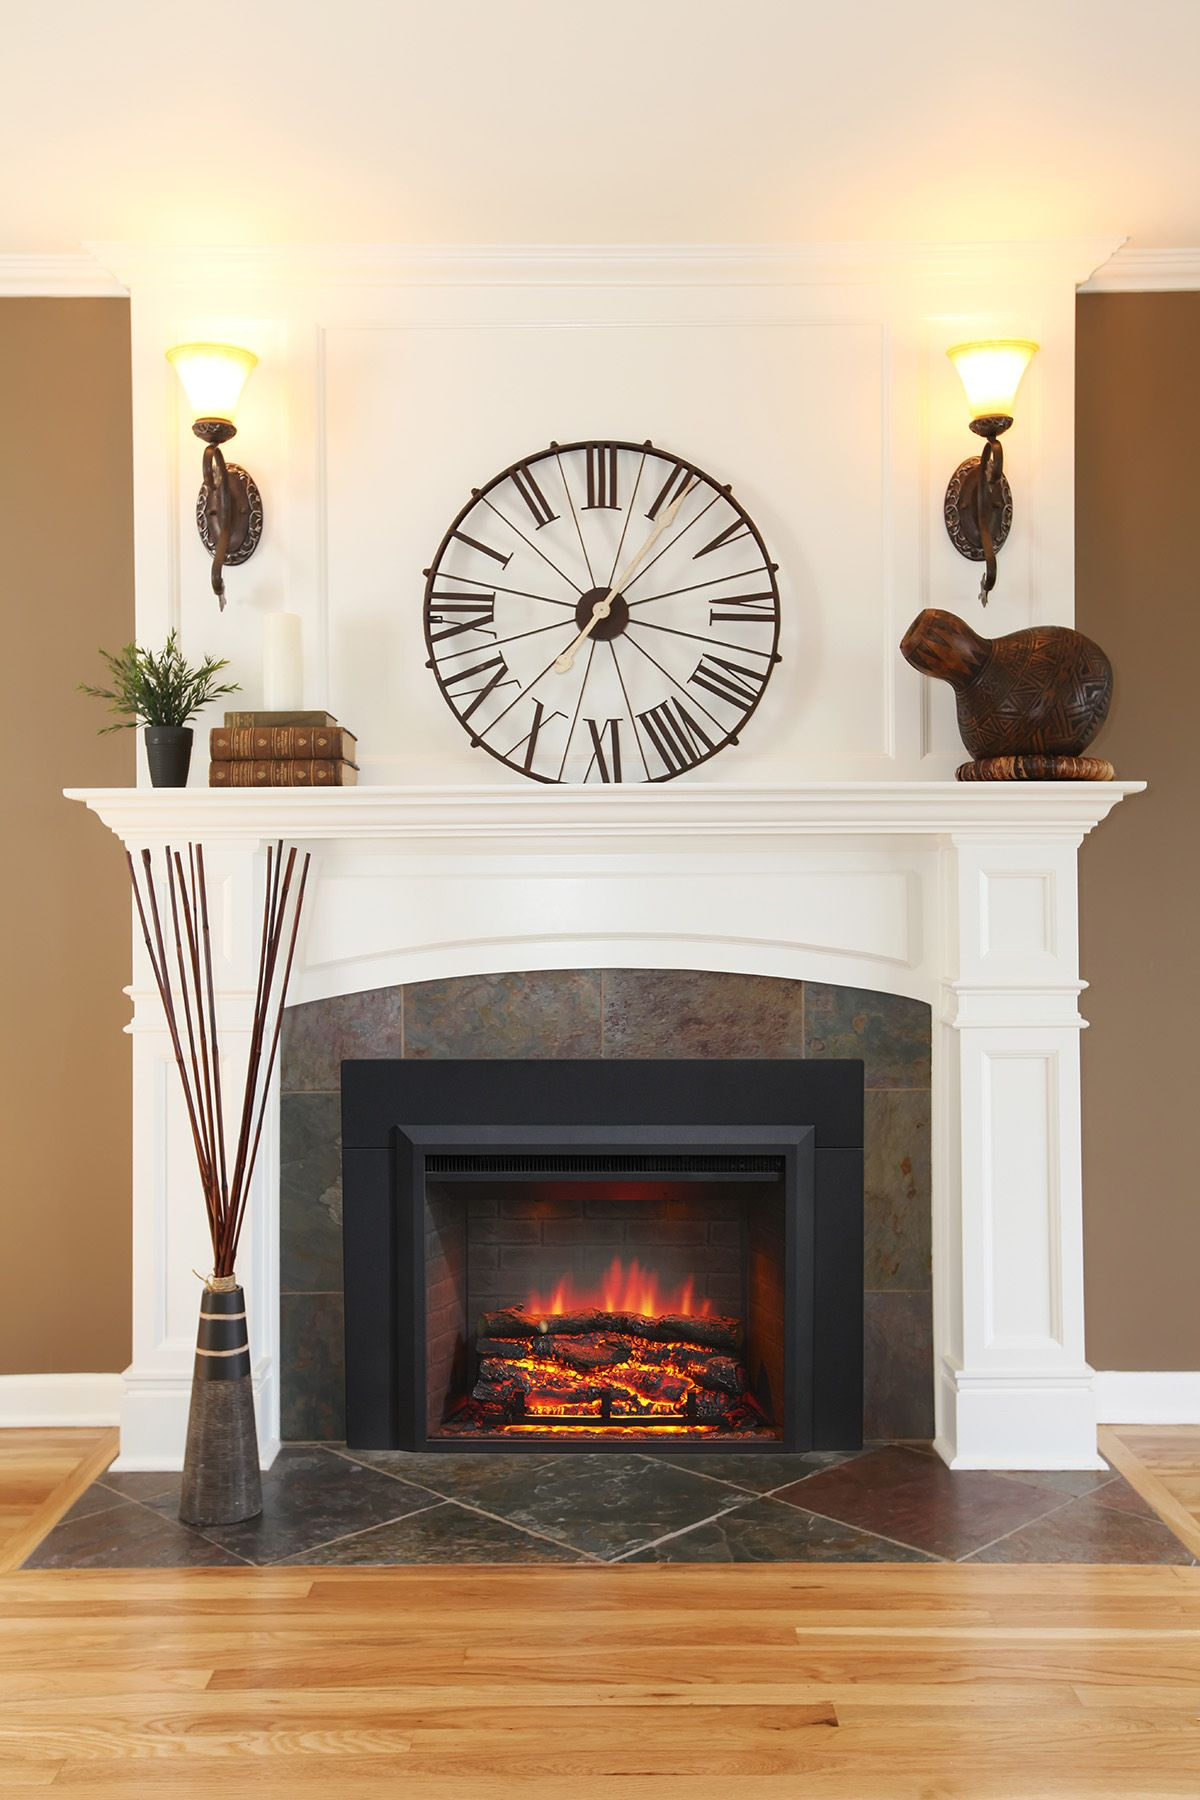 An Electric Fireplace Insert Convert Your Old Wood Burning